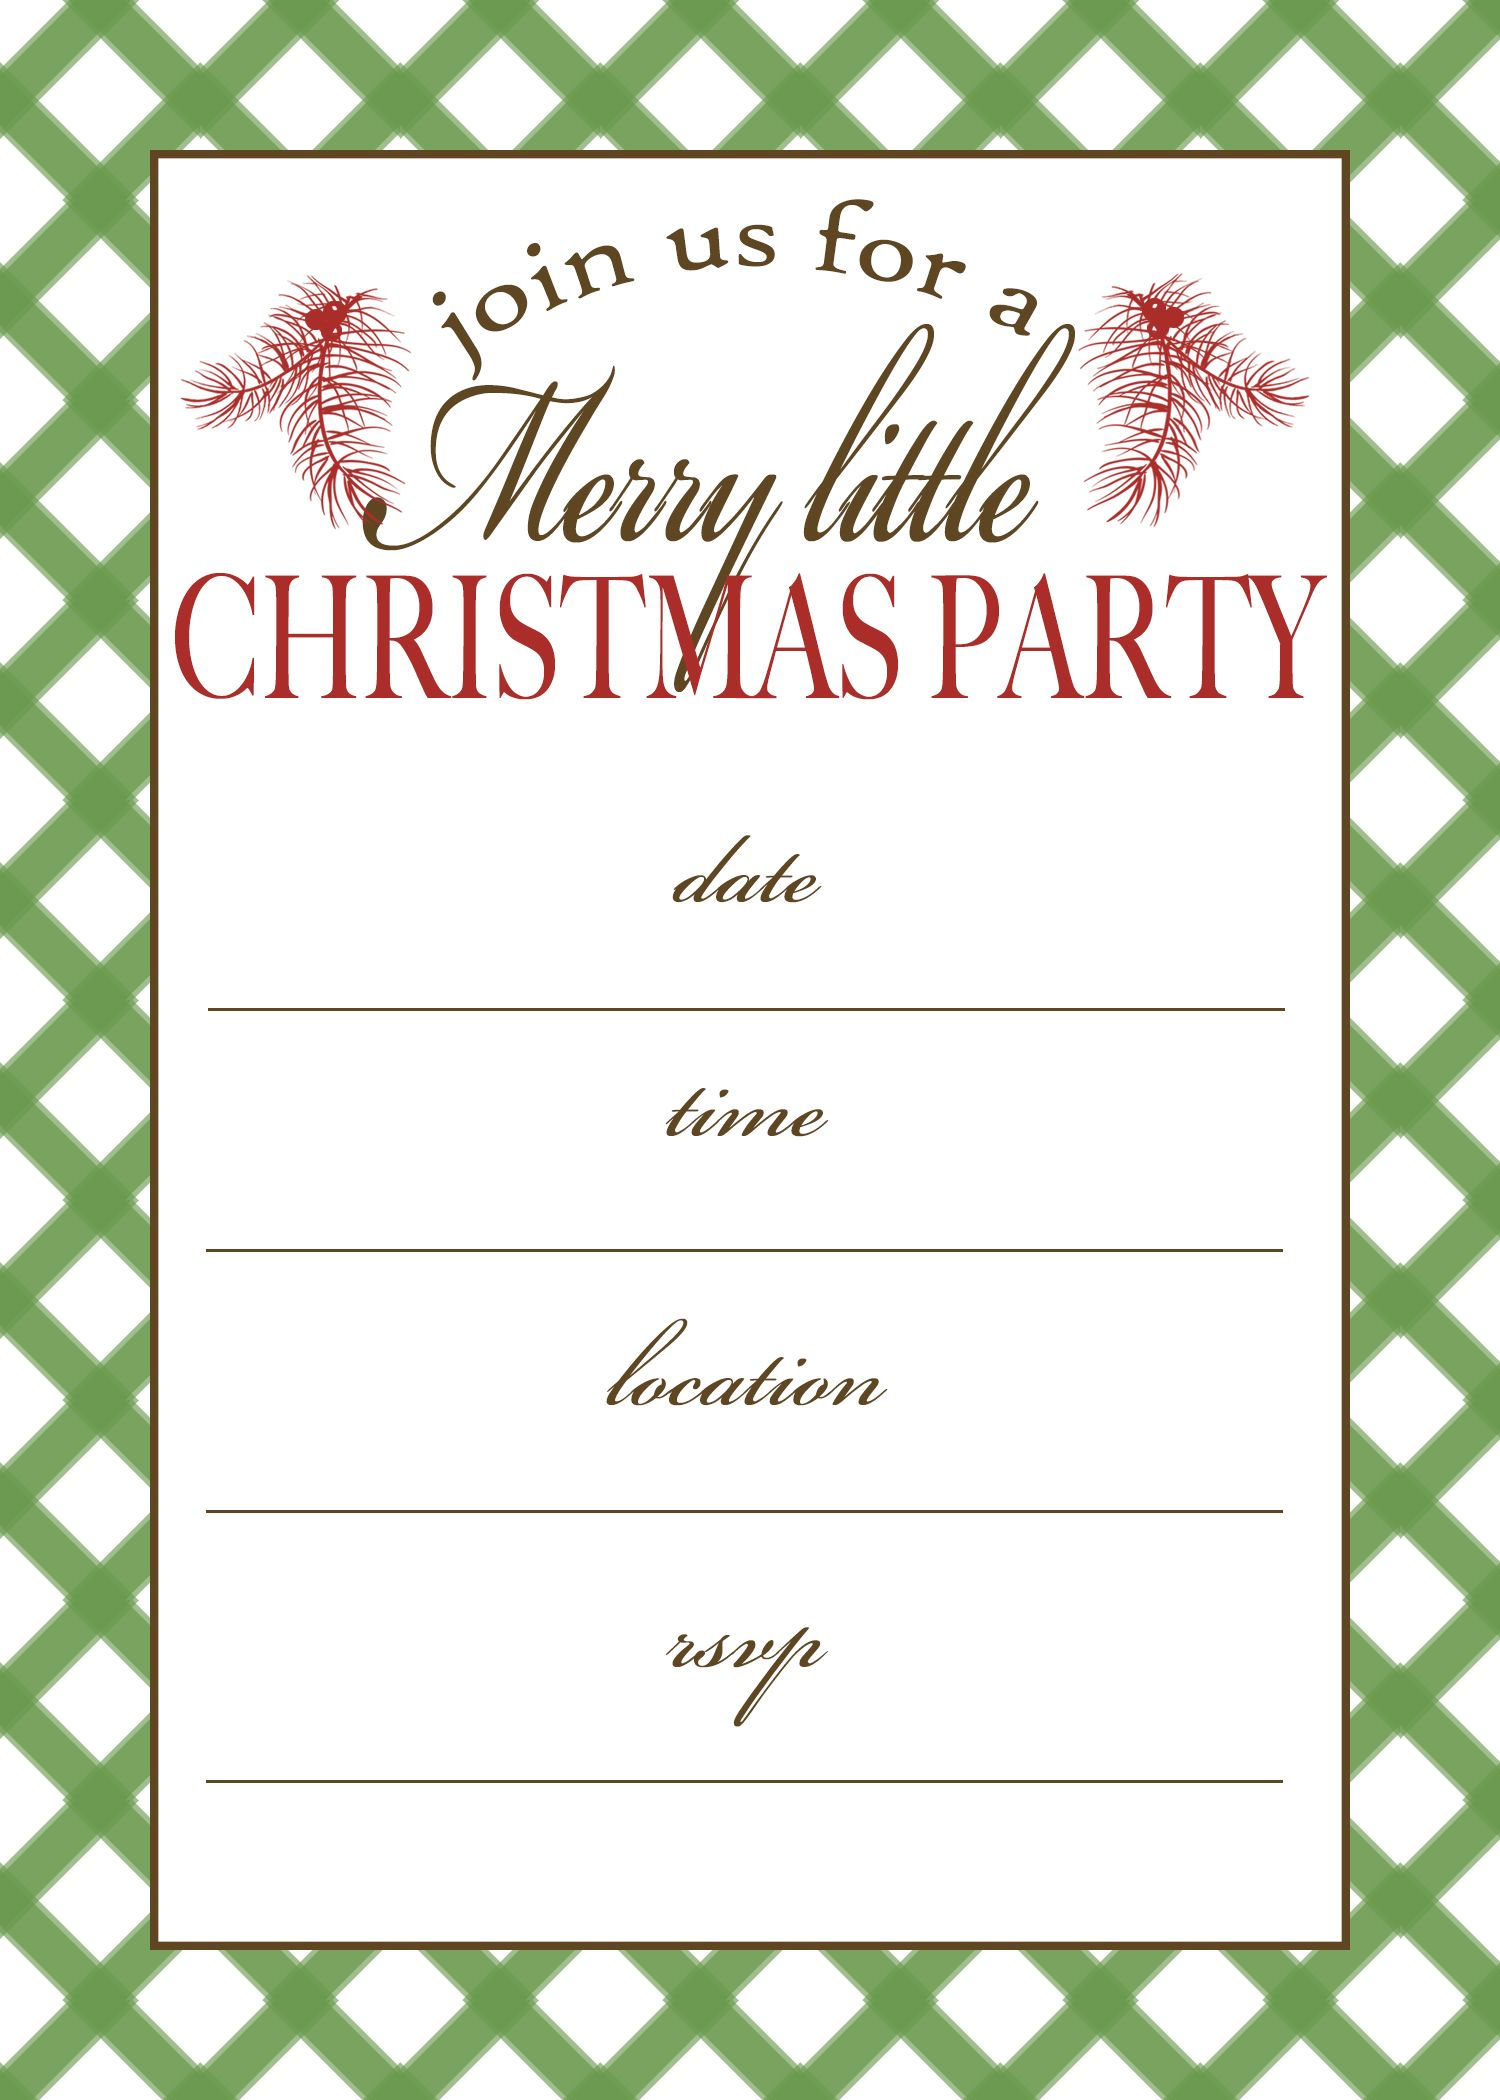 Free Printable Christmas Party Invitation Crafts Pinterest